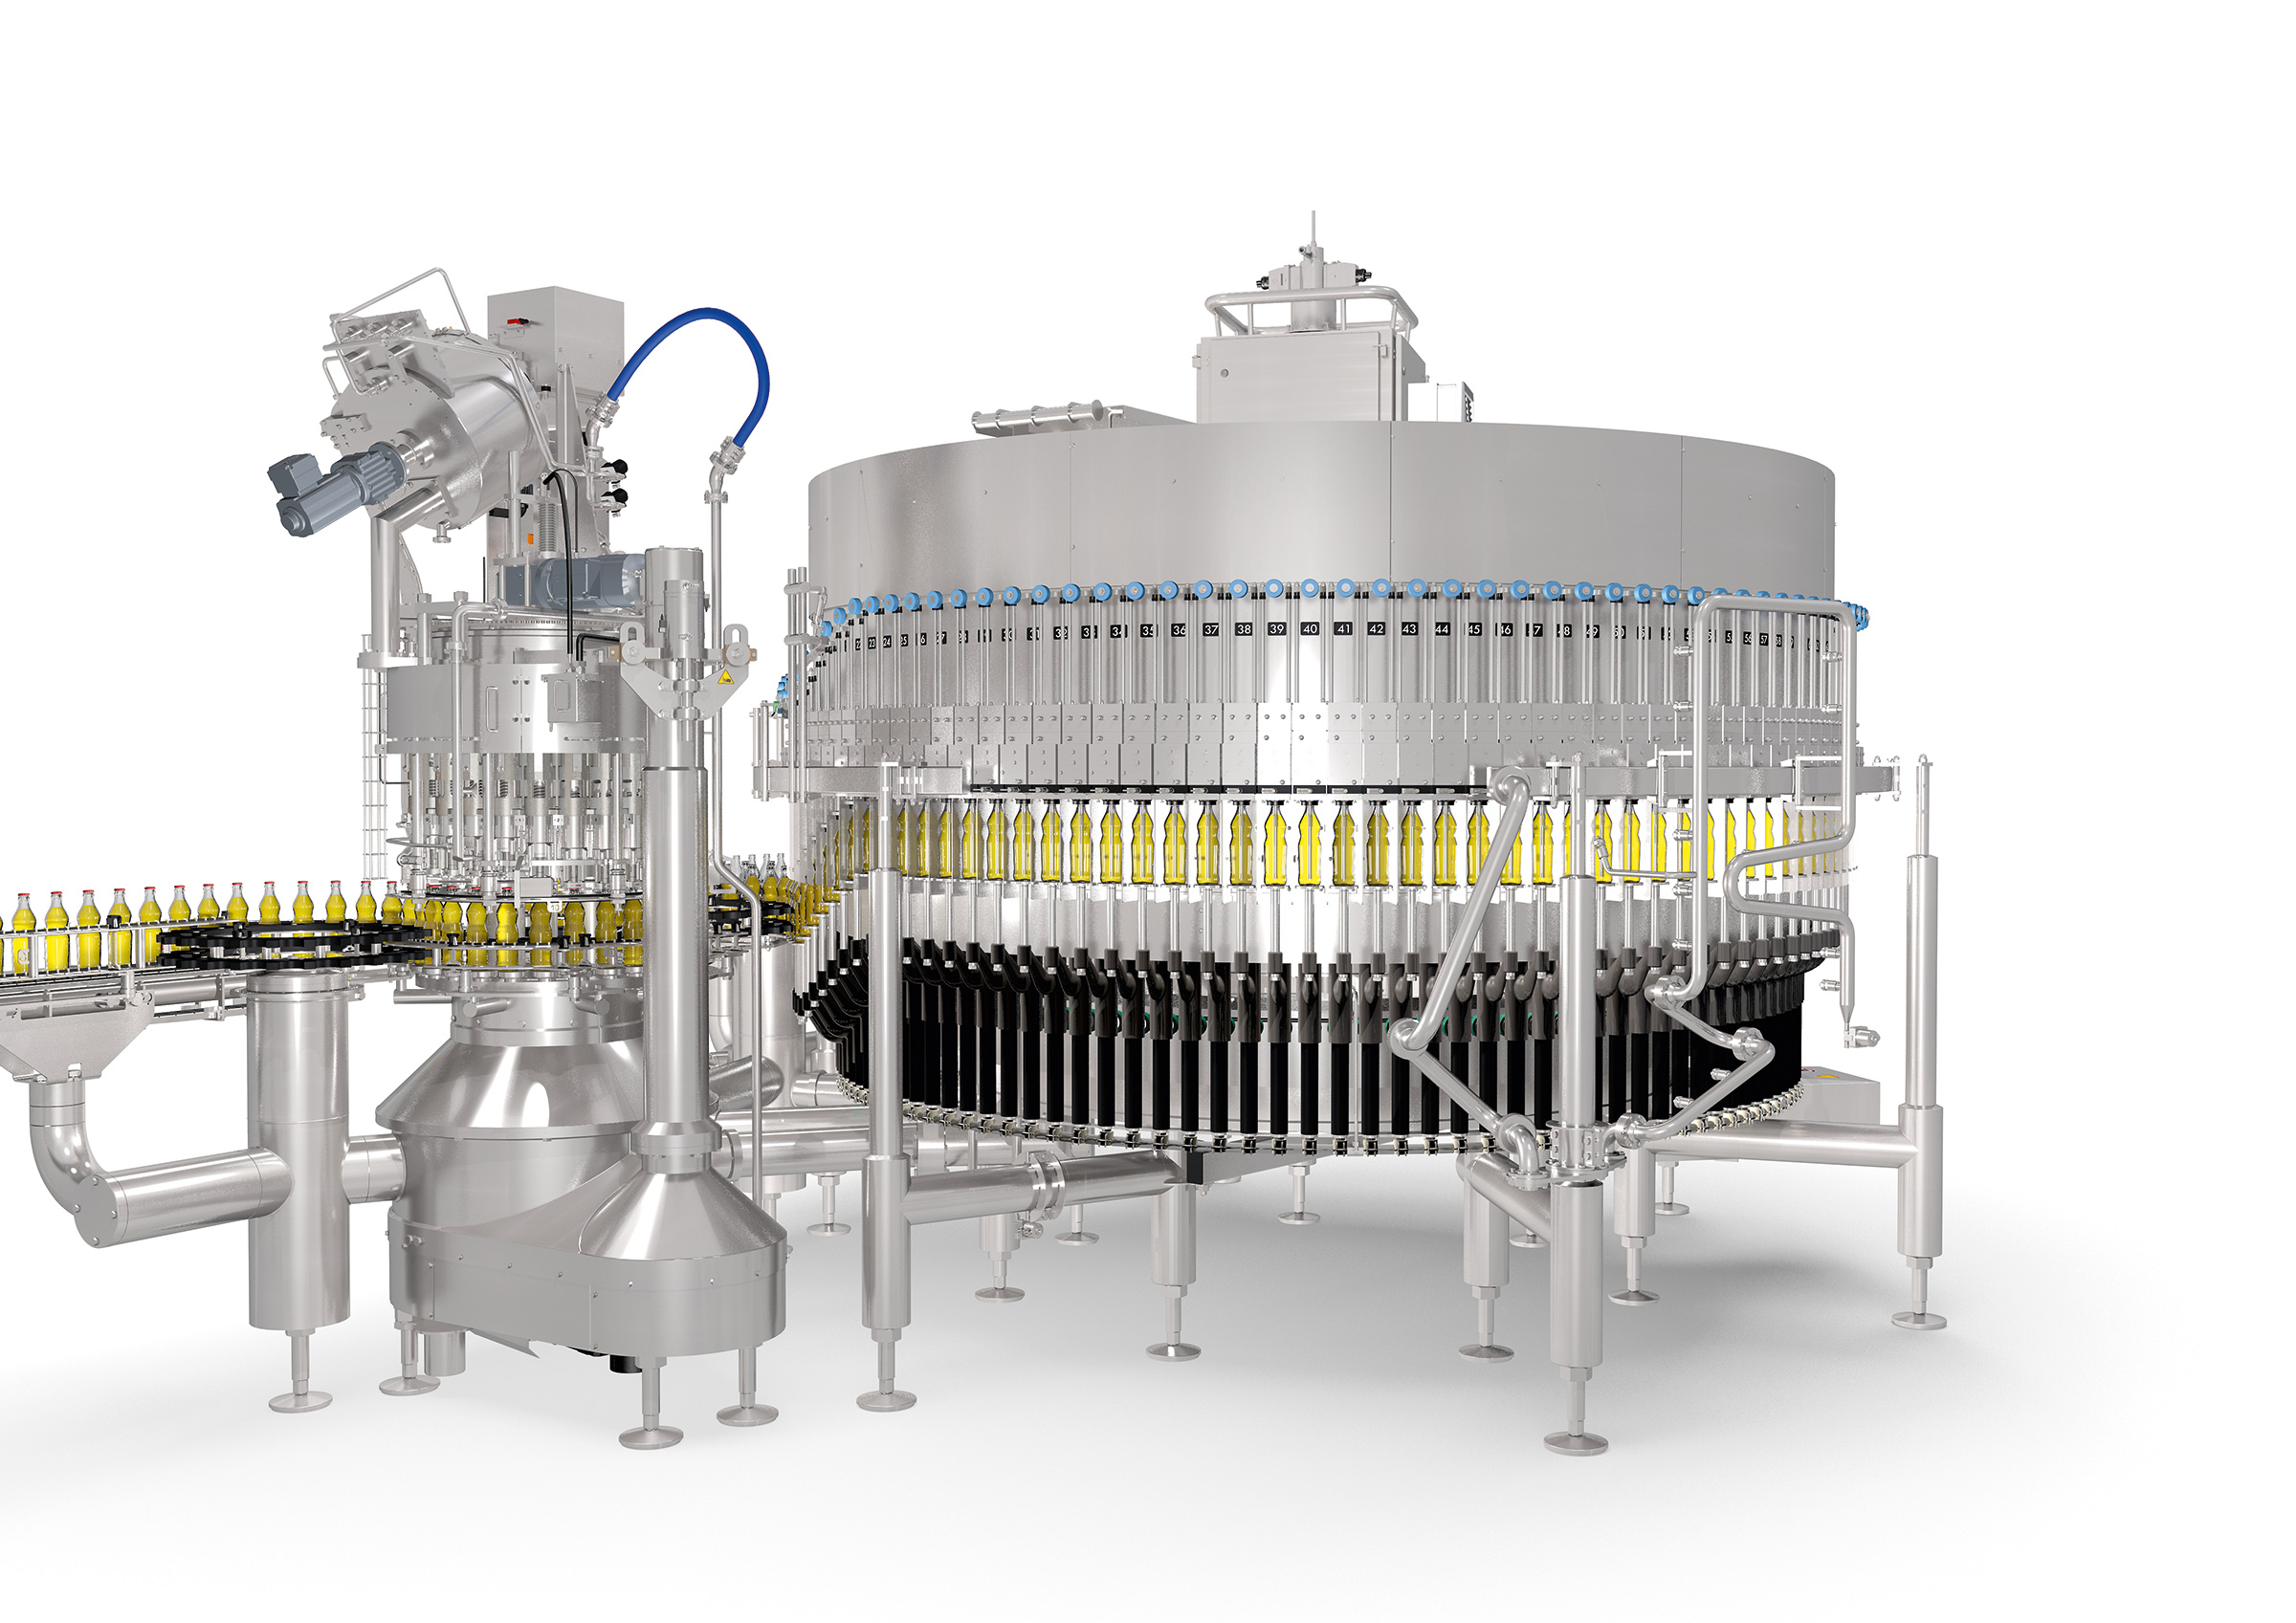 Product picture of Grows with the job: new KHS long-tube filler on the Innofill Glass platform